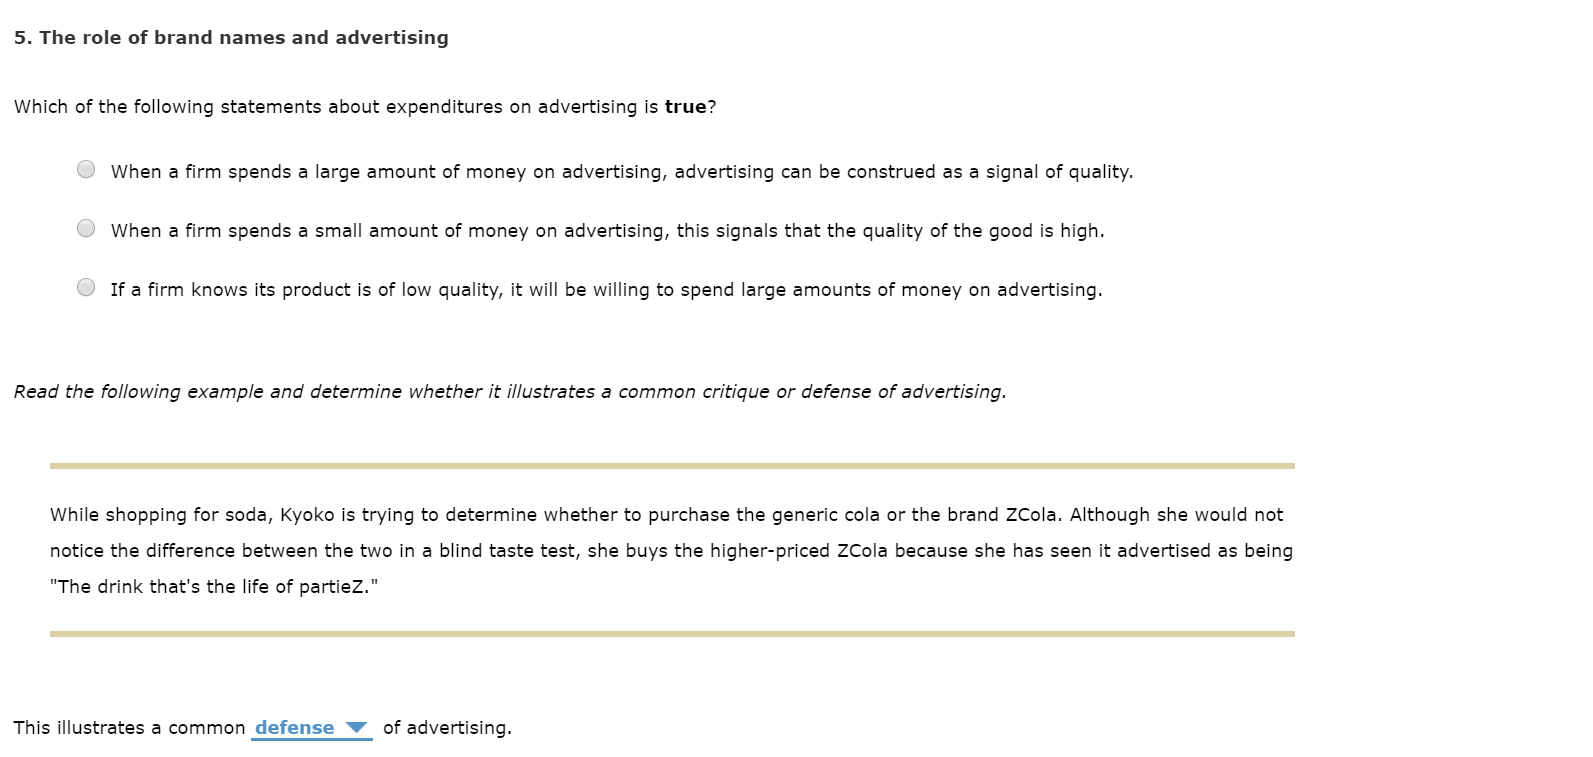 """5. The role of brand names and advertising Which of the following statements about expenditures on advertising is true? When a firm spends a large amount of money on advertising, advertising can be construed as a signal of quality. When a firm spends a small amount of money on advertising, this signals that the quality of the good is high If a firm knows its product is of low quality, it will be willing to spend large amounts of money on advertising. Read the following example and determine whether it illustrates a common critique or defense of advertising. While shopping for soda, Kyoko is trying to determine whether to purchase the generic cola or the brand ZCola. Although she would not notice the difference between the two in a blind taste test, she buys the higher-priced ZCola because she has seen it advertised as being """"The drink that's the life of partieZ."""" of advertising. This illustrates a common defense"""